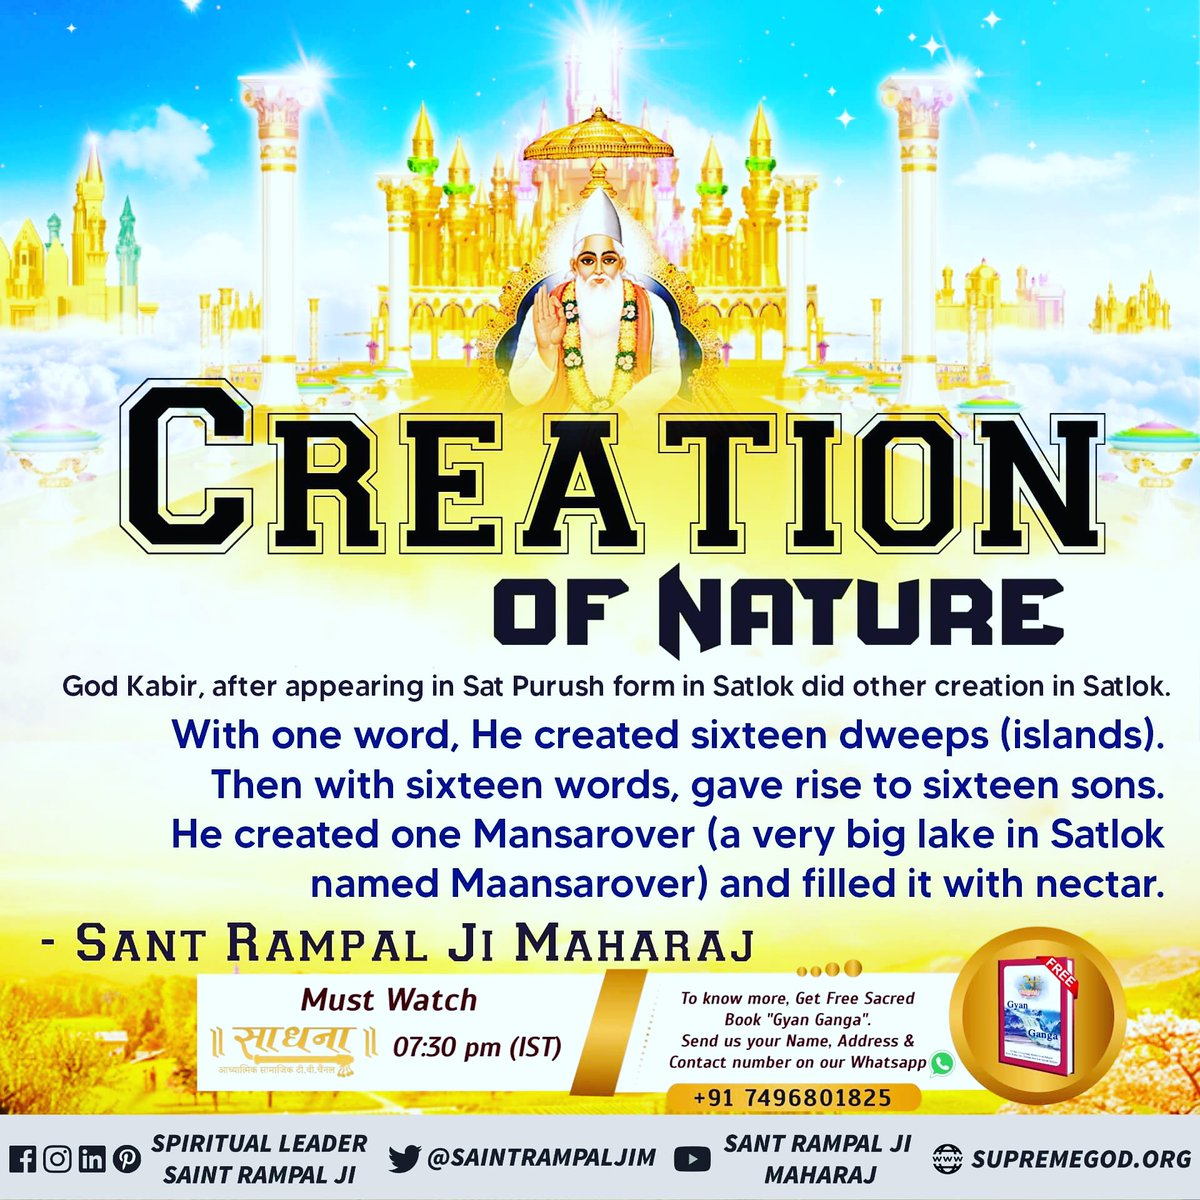 CREATION OF NATURE  WHO IS THE SUPREME GOD?  Puran Brahm Kabir Saheb or 'SUPREME GOD KABIR' is the controller of Infinite Brahmands (Universe). @SaintRampalJiM  For More Information Visit Satlok Ashram YouTube Channel #thursdaymorning  #GodMorningTuesday